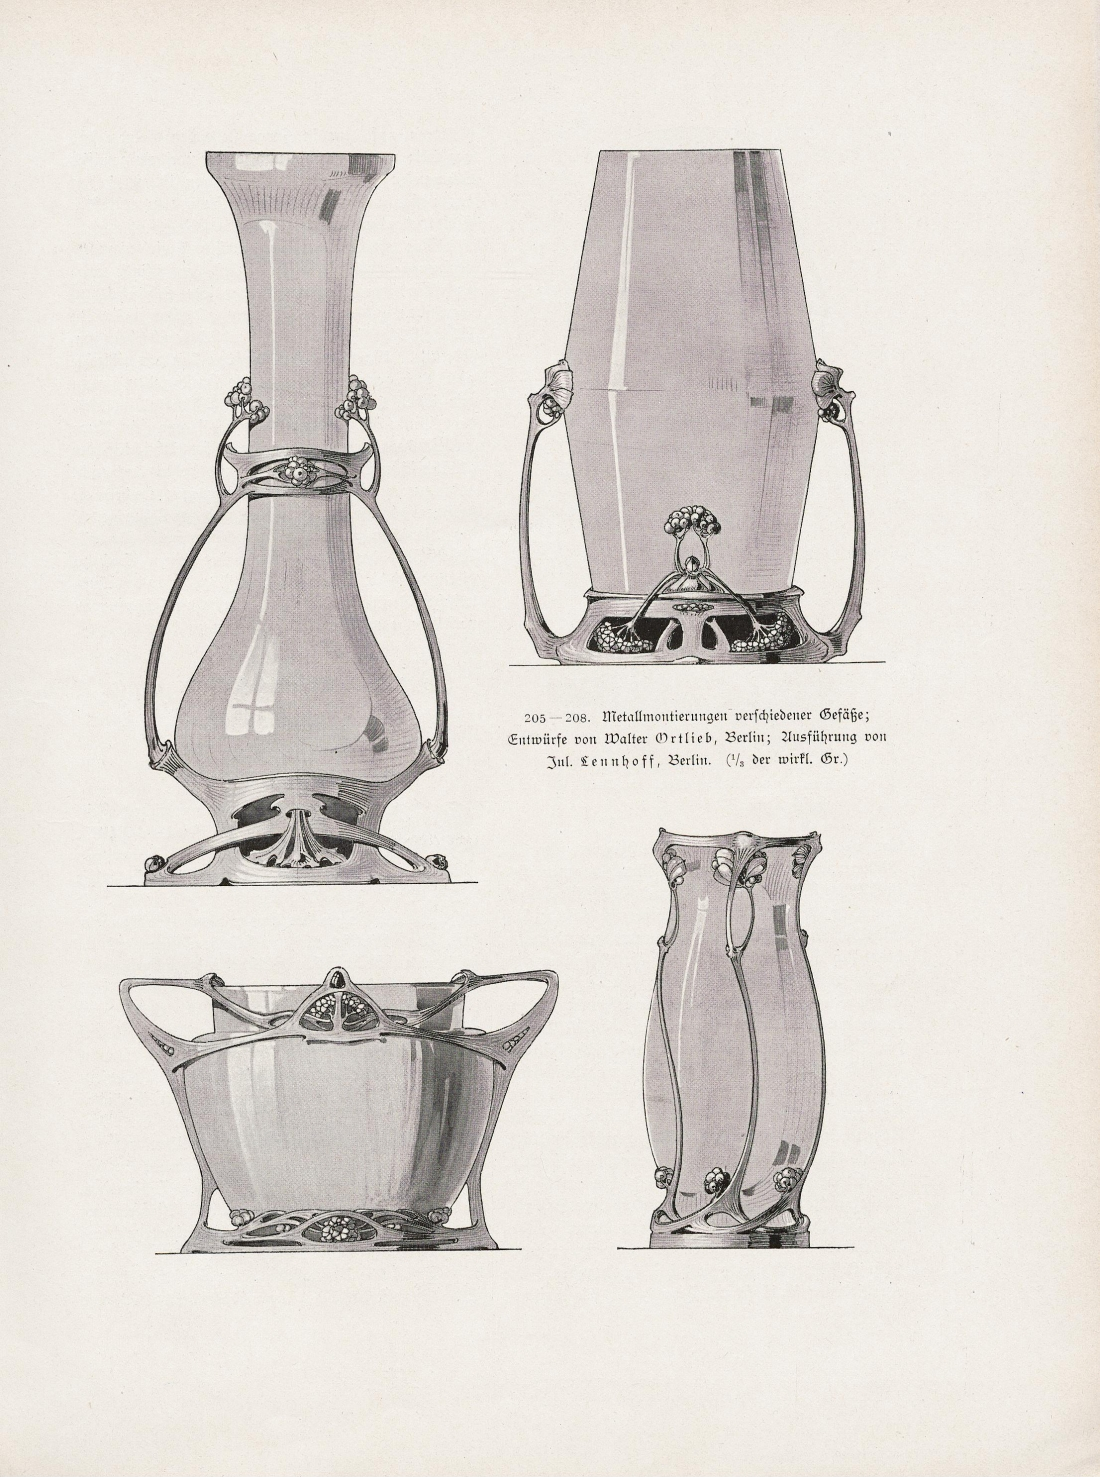 Vases. 1901. Vases. 1901. Illustrations 205-208, page 127.